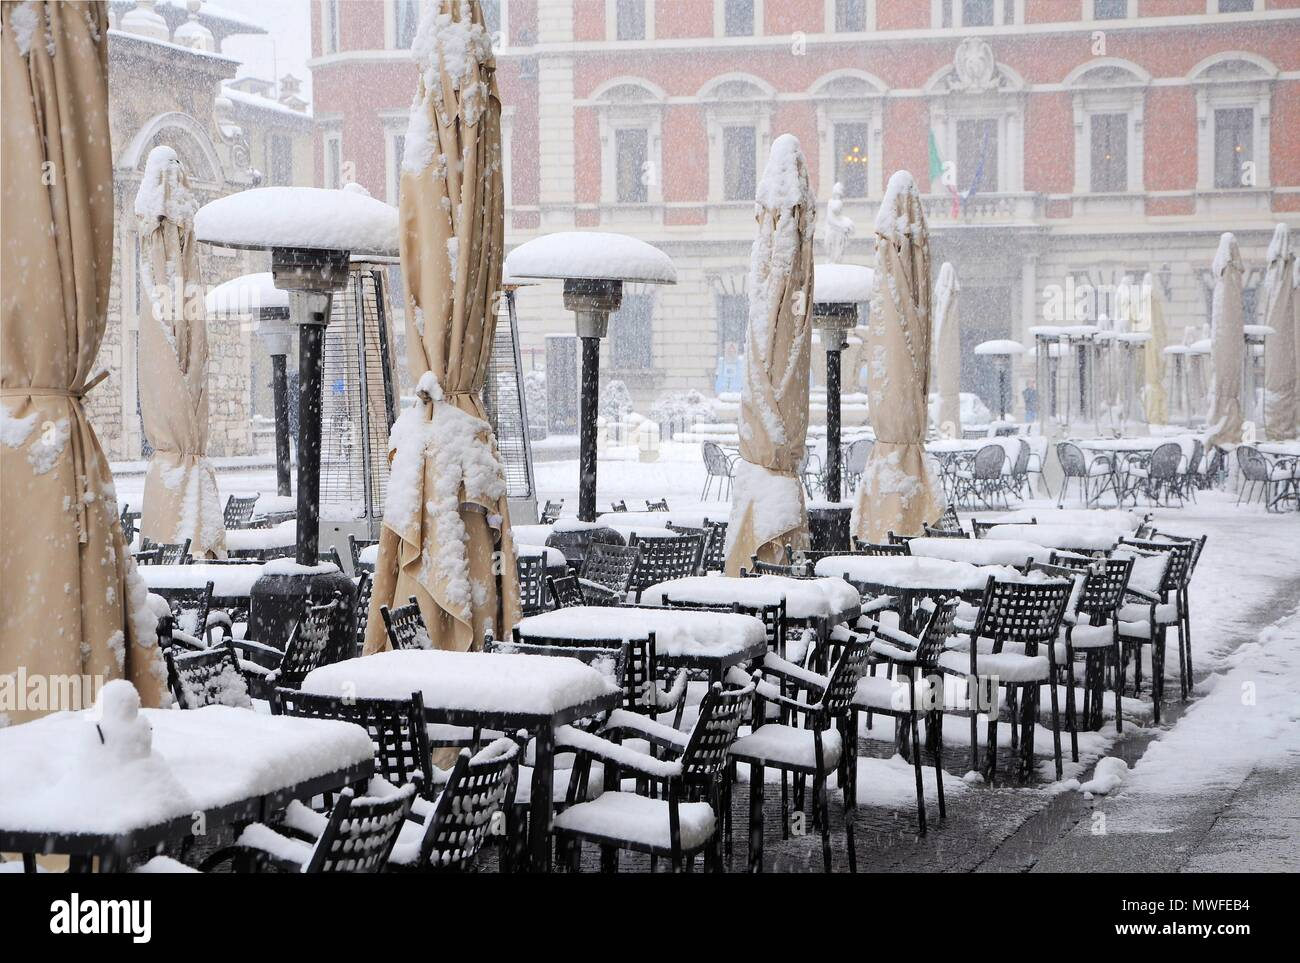 Outside Bar Tables Covered With Snow. Brescia, Italy